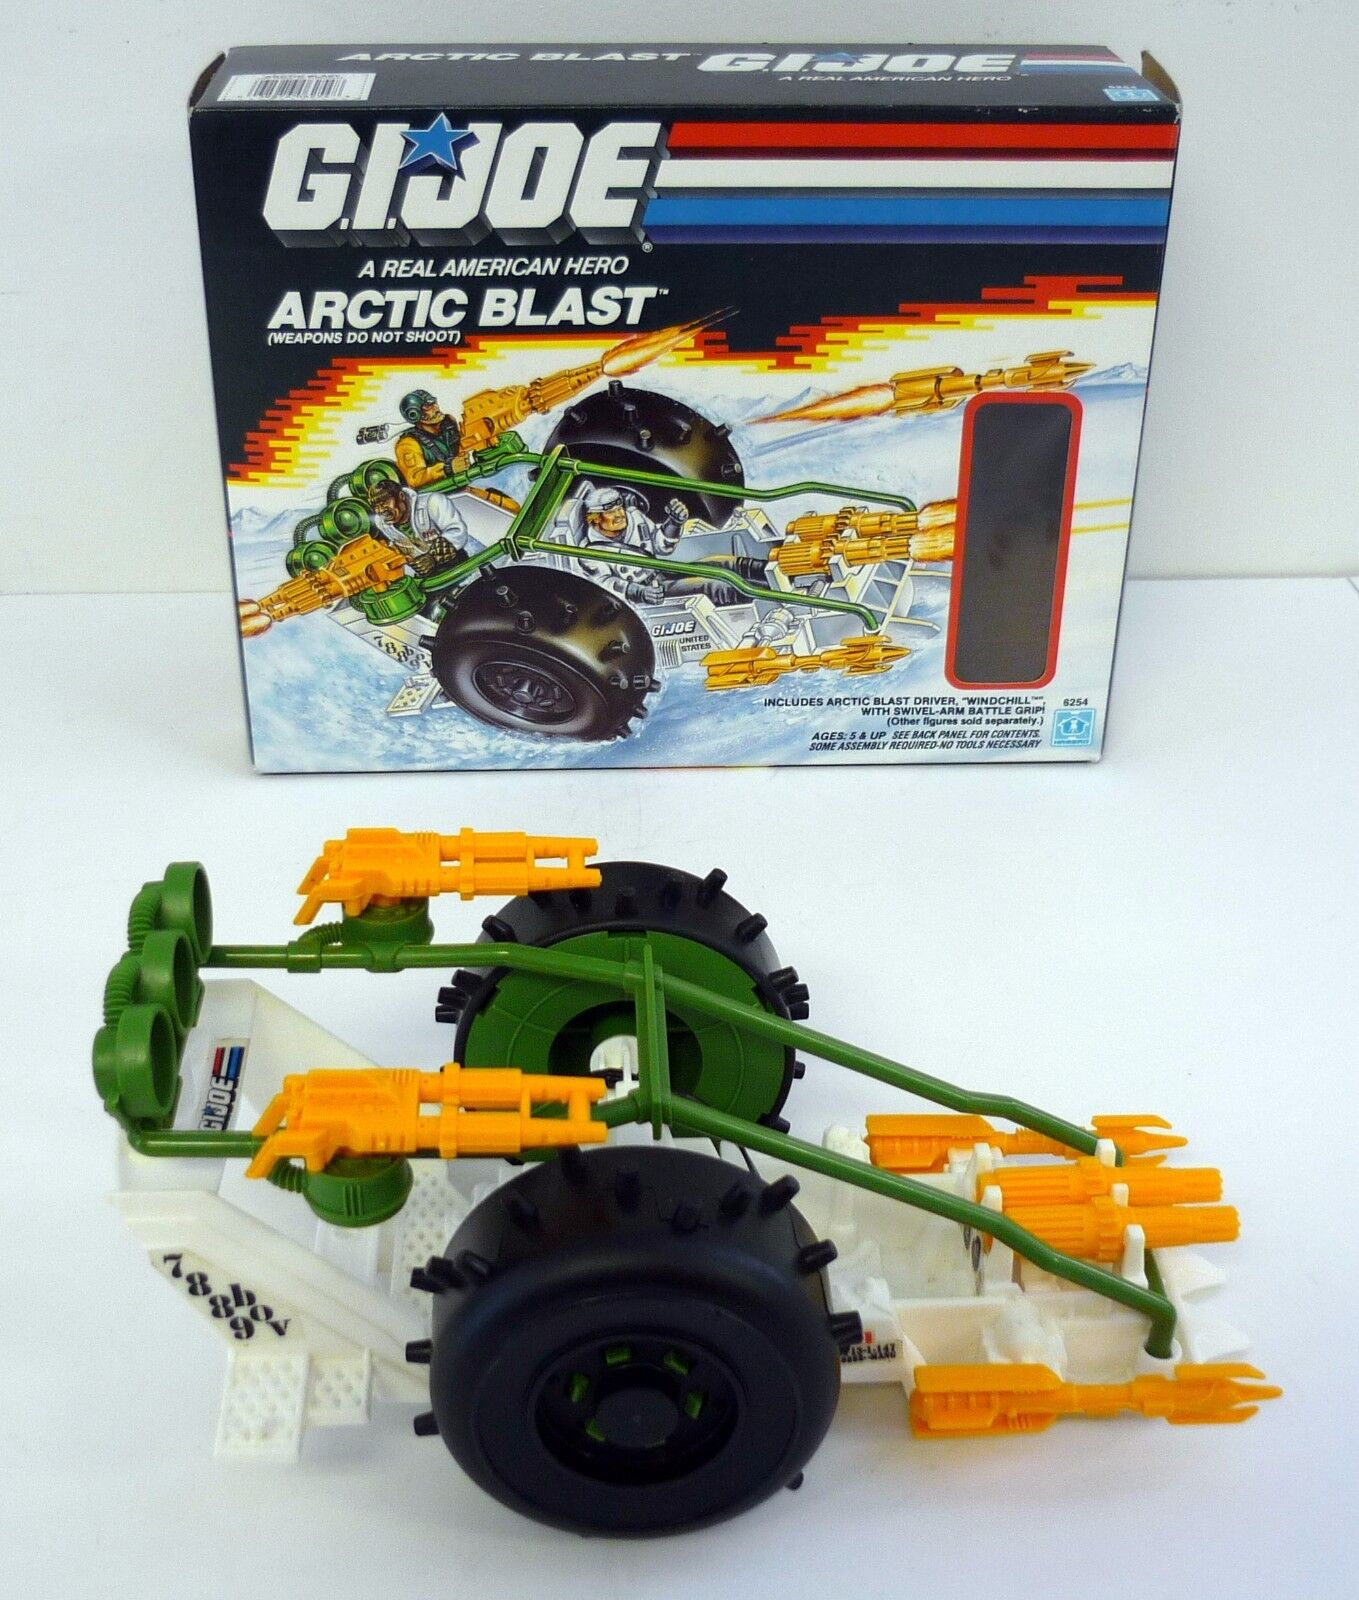 GI  JOE ARCTIC BLAST Vintage Action Figure Vehicle COMPLETE w BOX 1989  haute qualité et expédition rapide